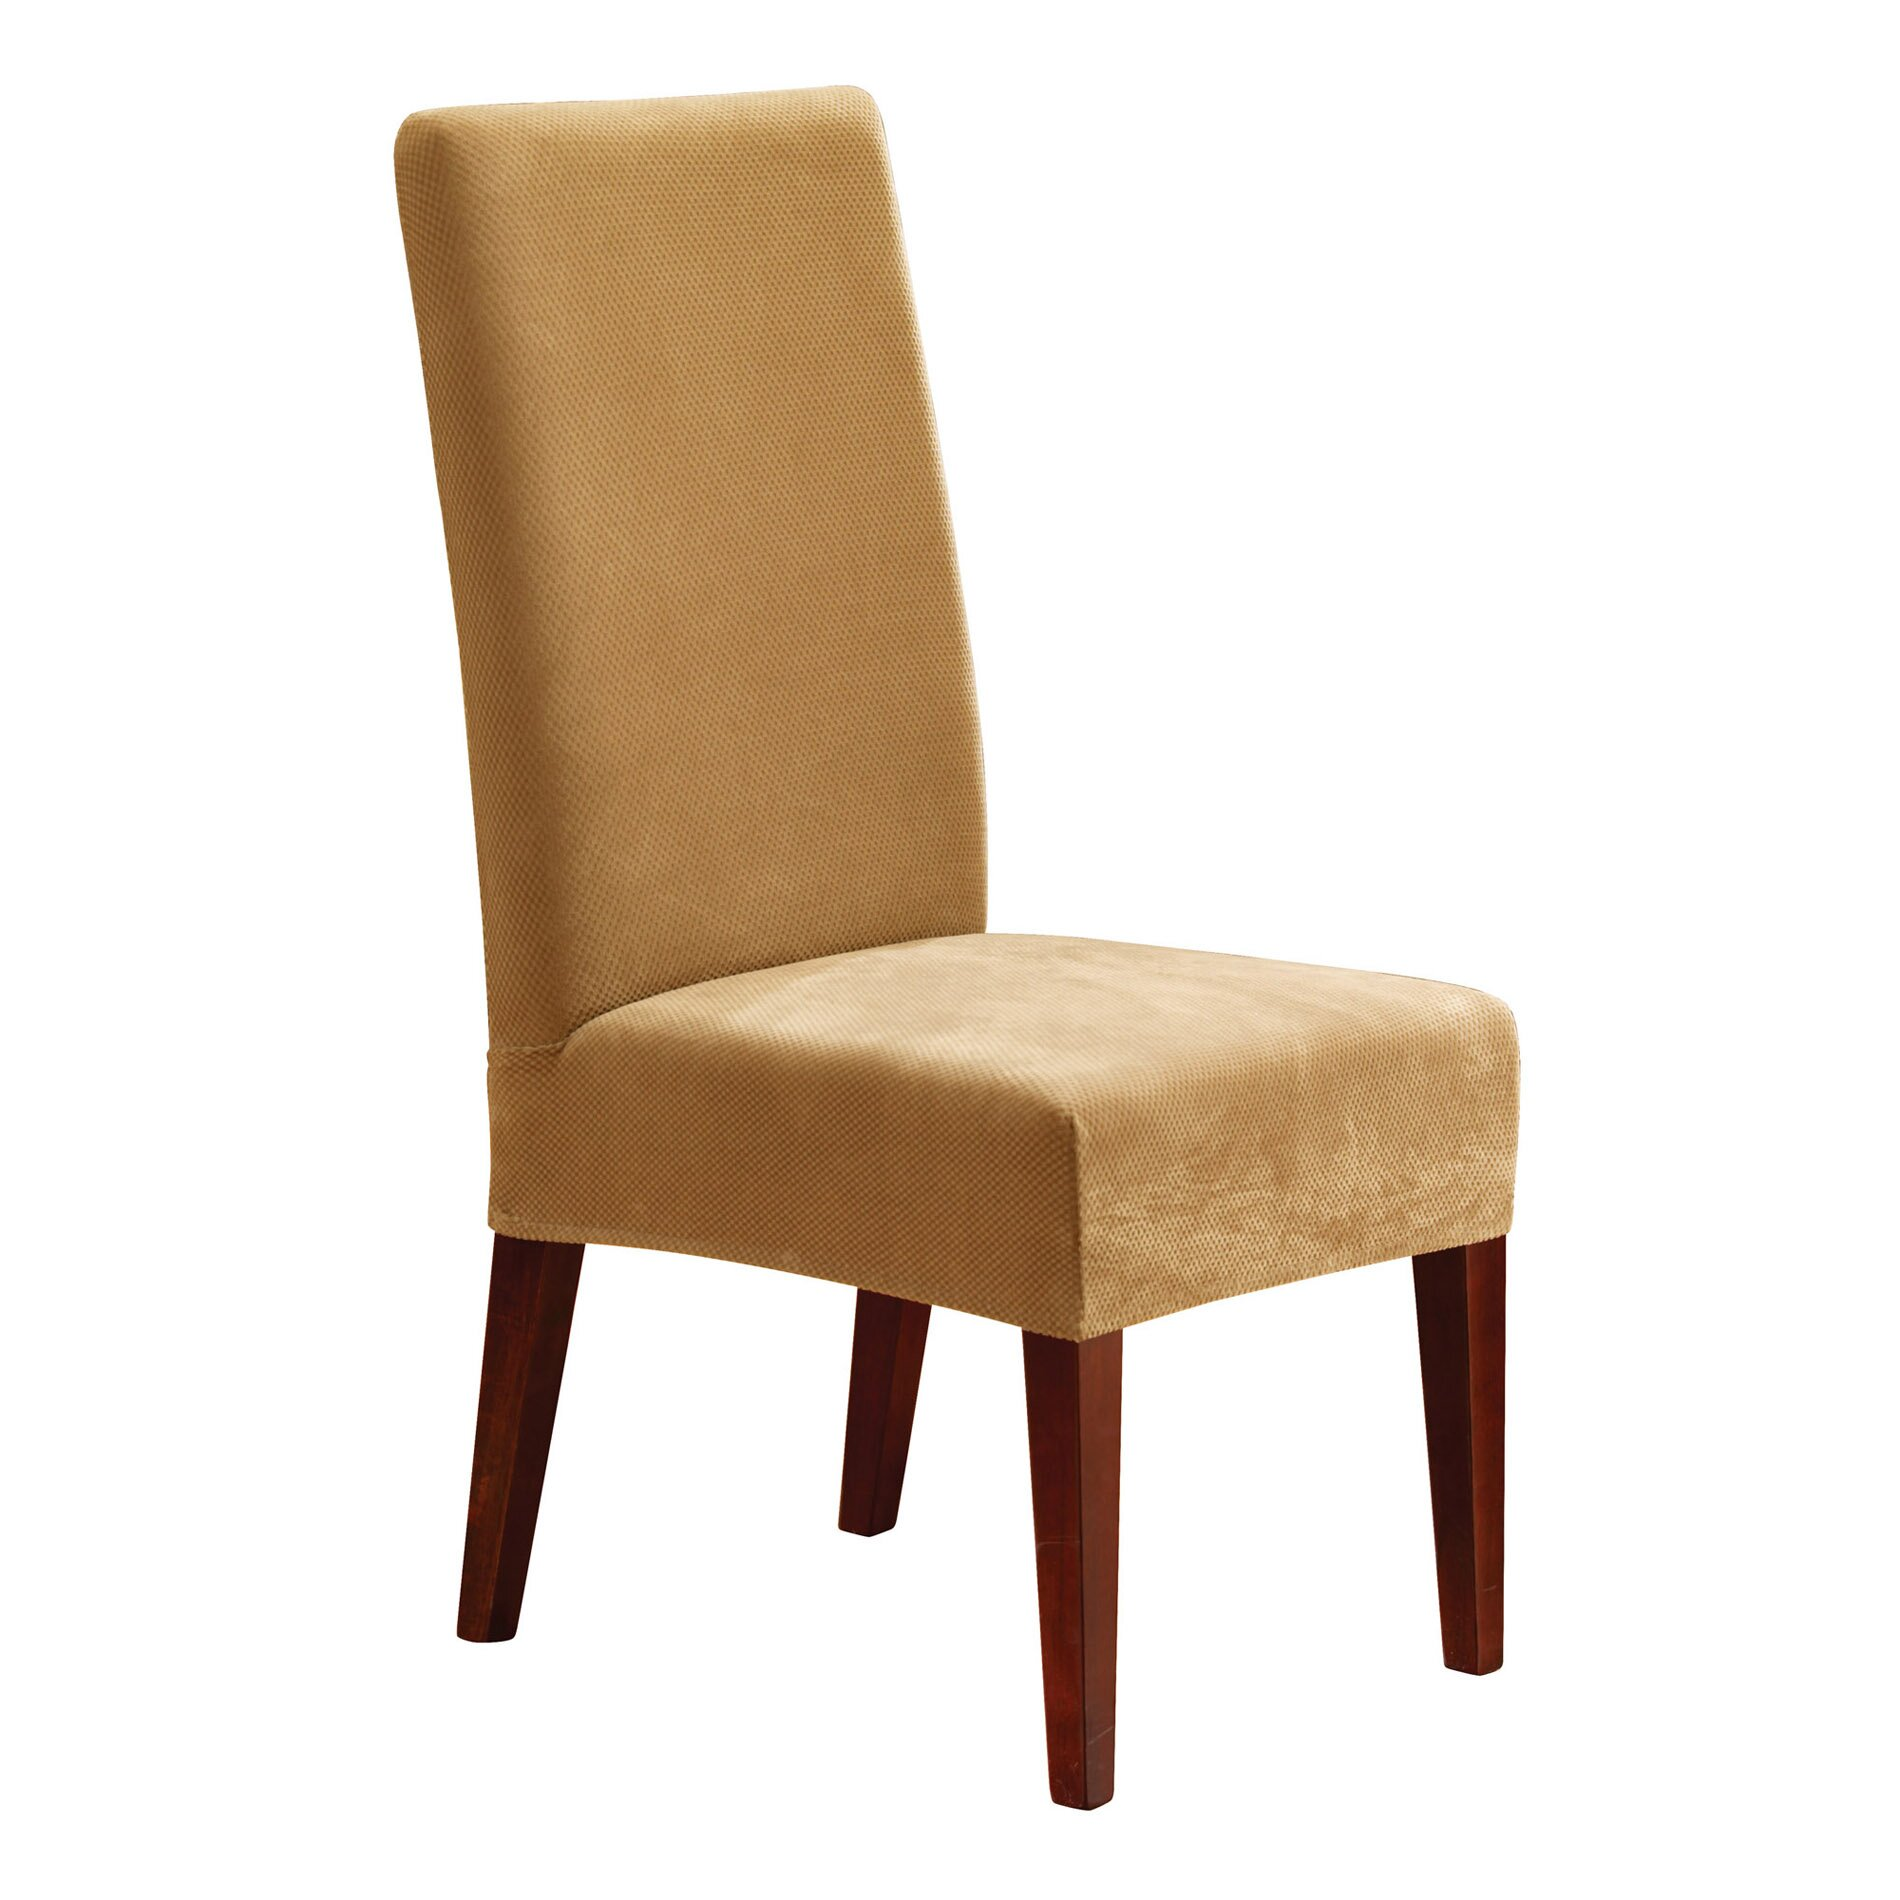 Kitchen Dining Chair Slipcovers You 39 Ll Love Wayfair Xt Luxury Embroidered Tablecloth Table Woven